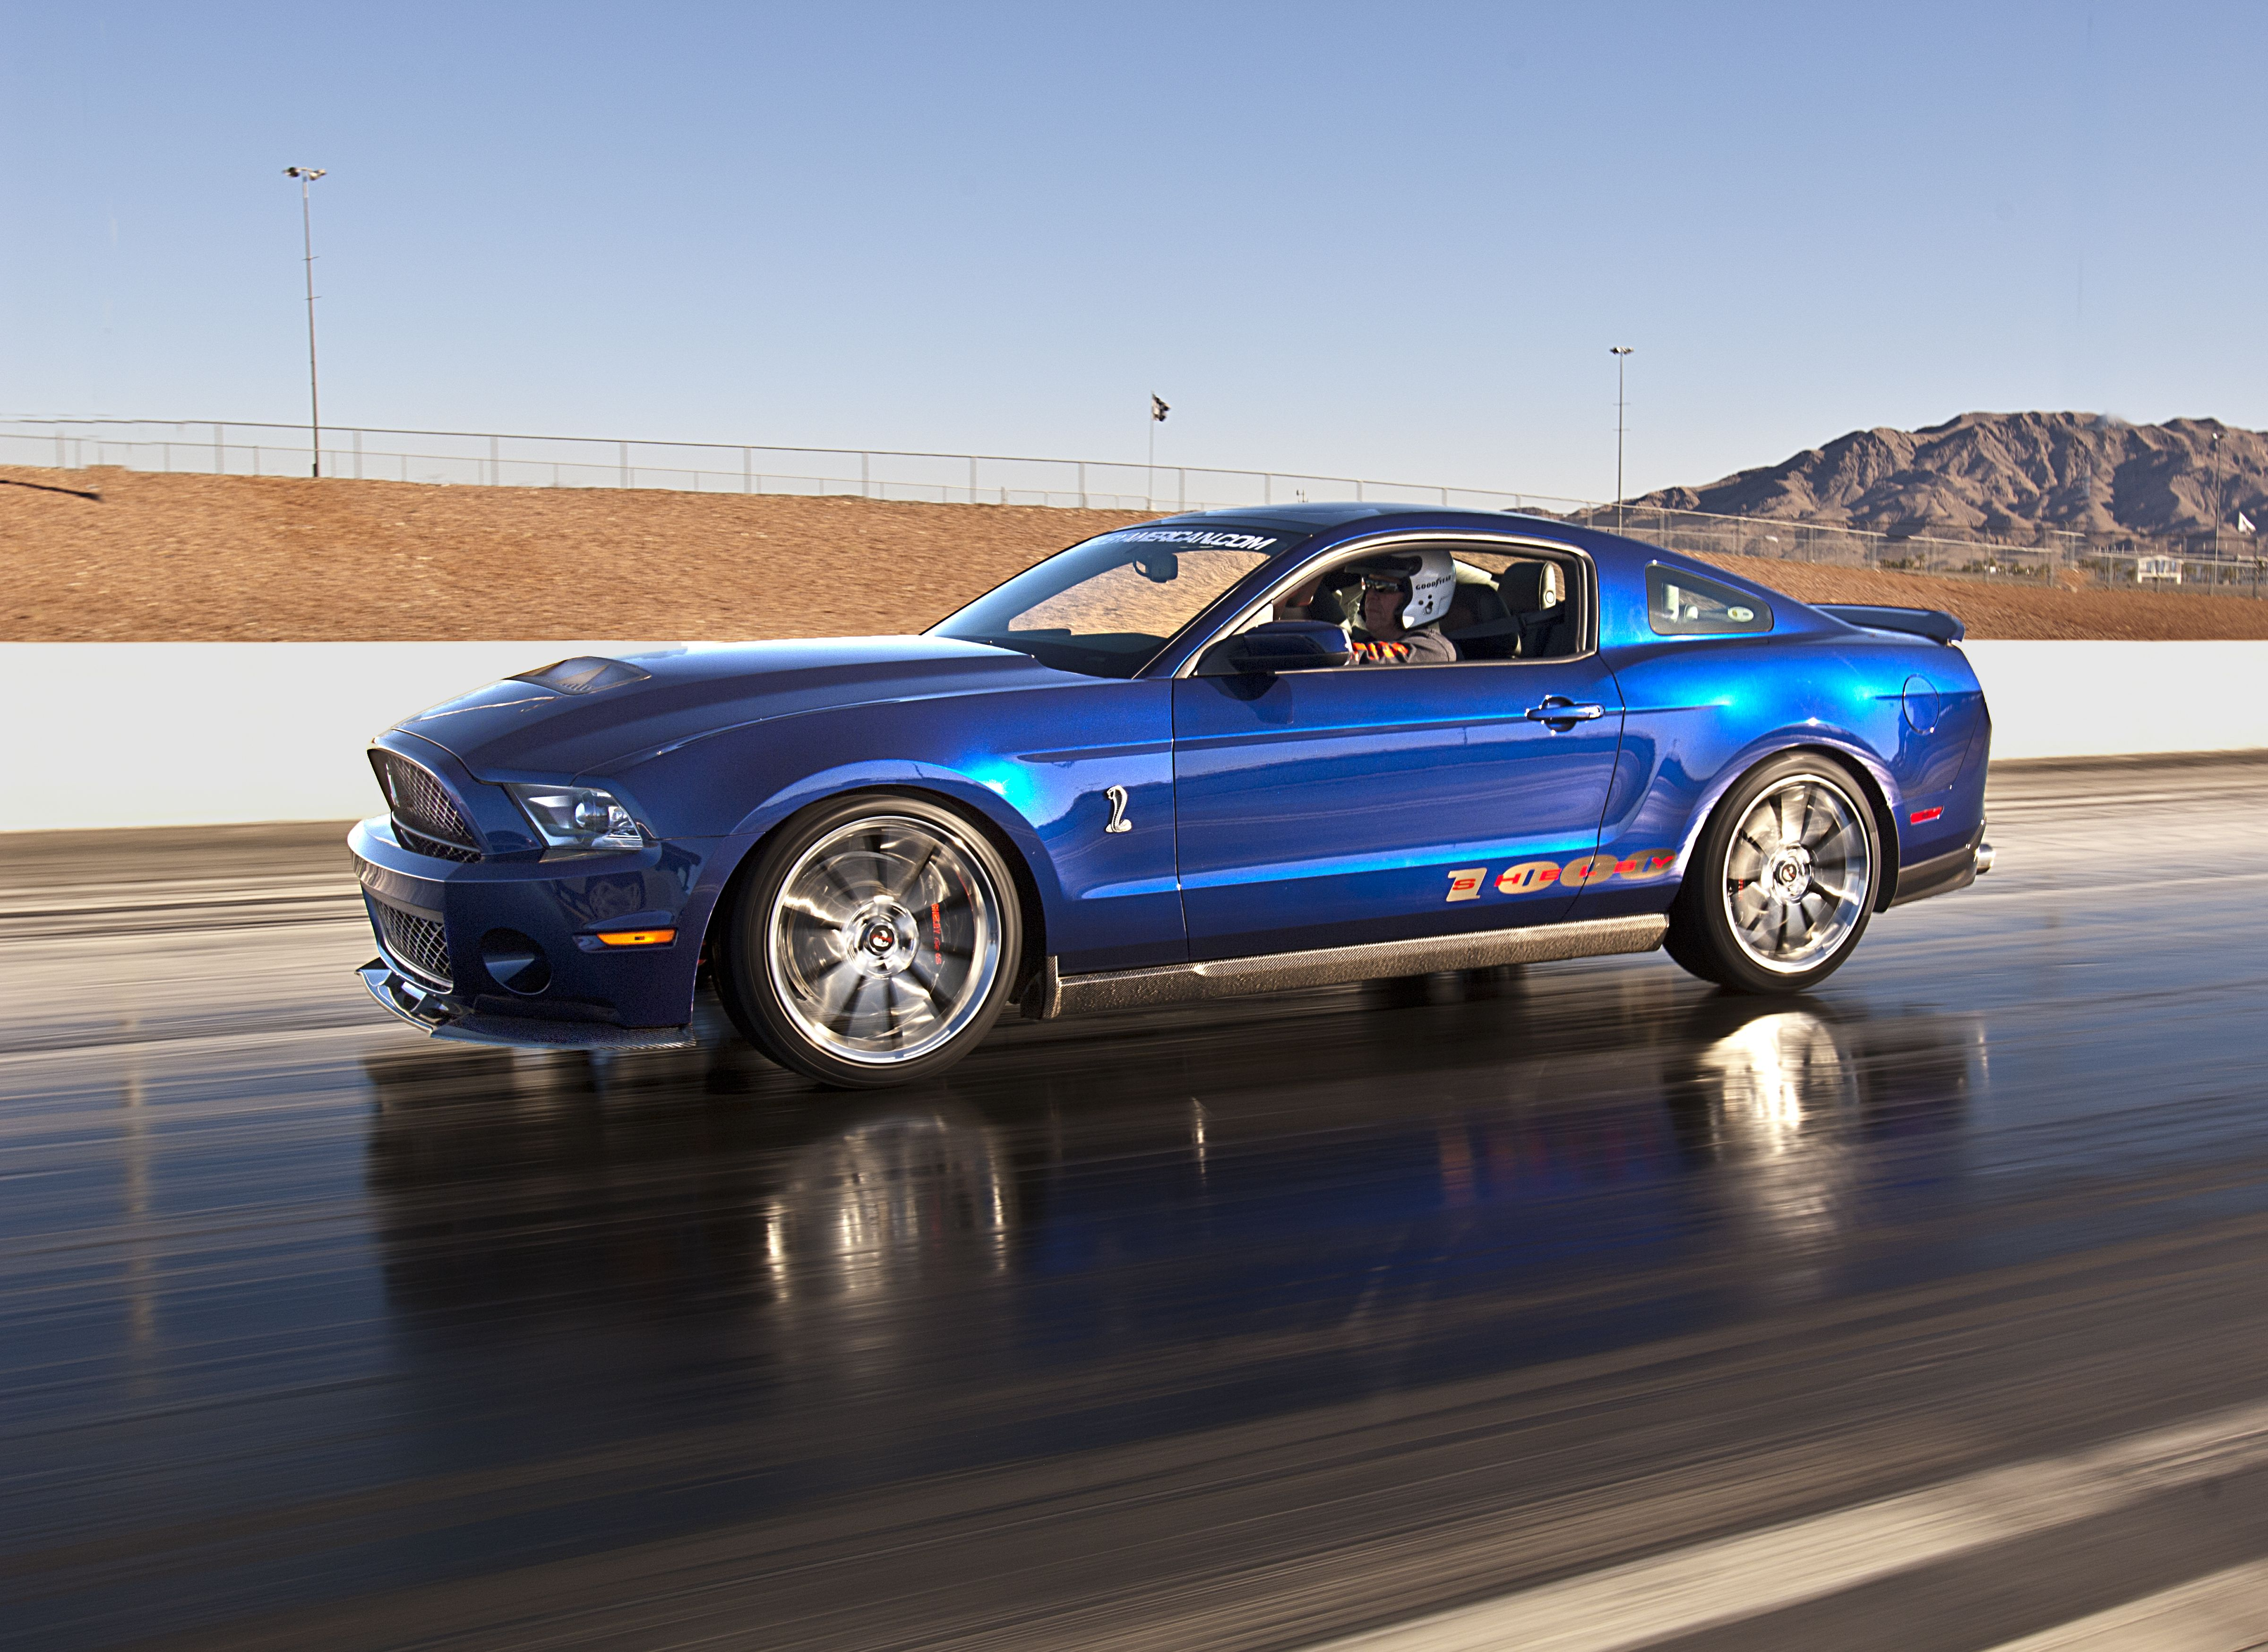 Shelby american to introduce most powerful shelby yet read more http blogs ford mustang shelbyford